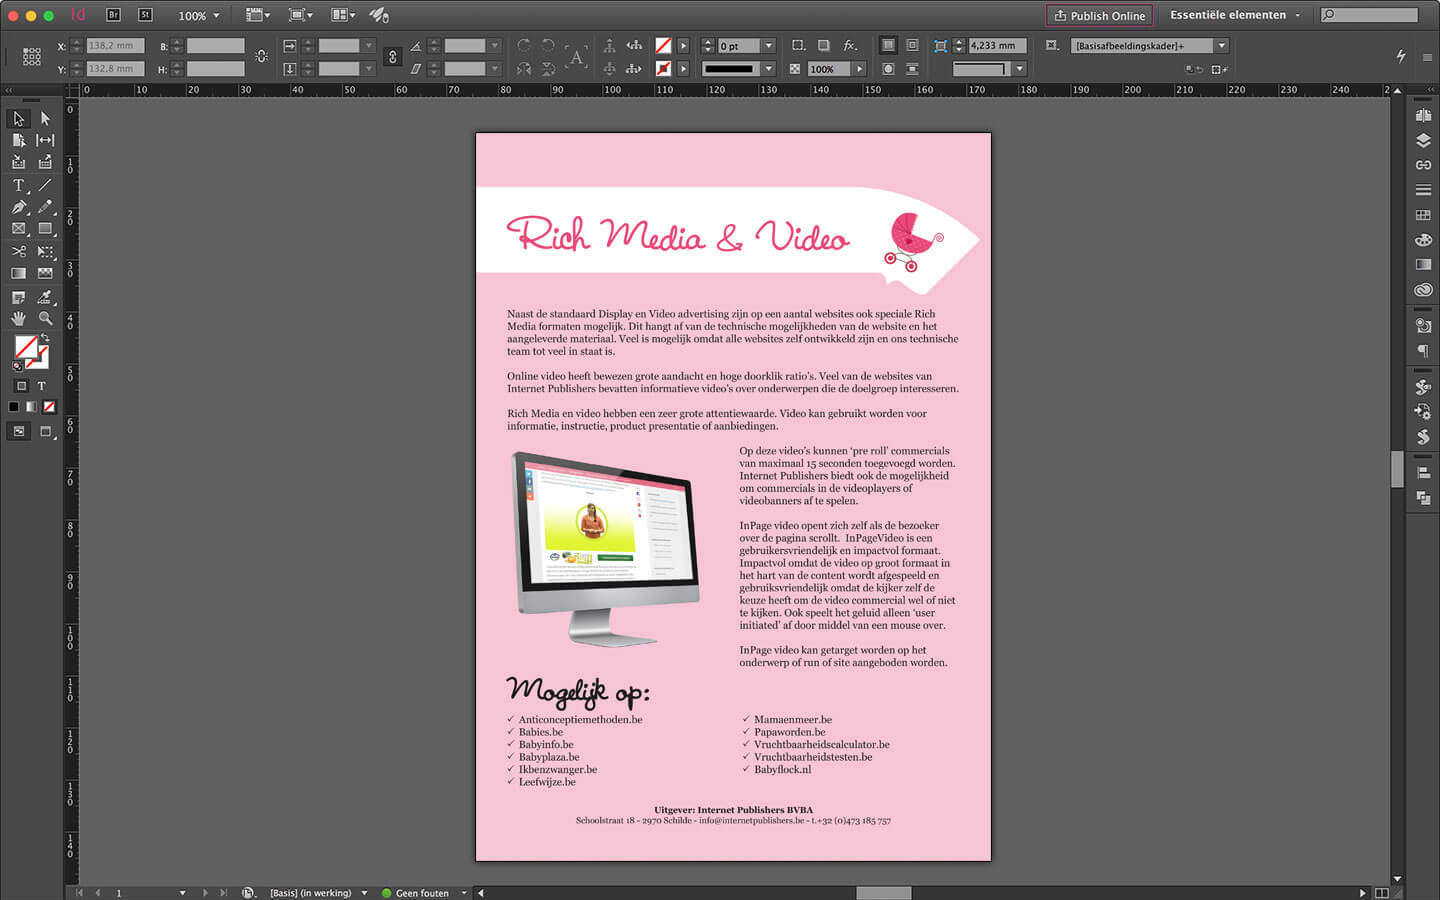 Ontwerp Brochure Internetpublishers pagina: RichMedia & Video